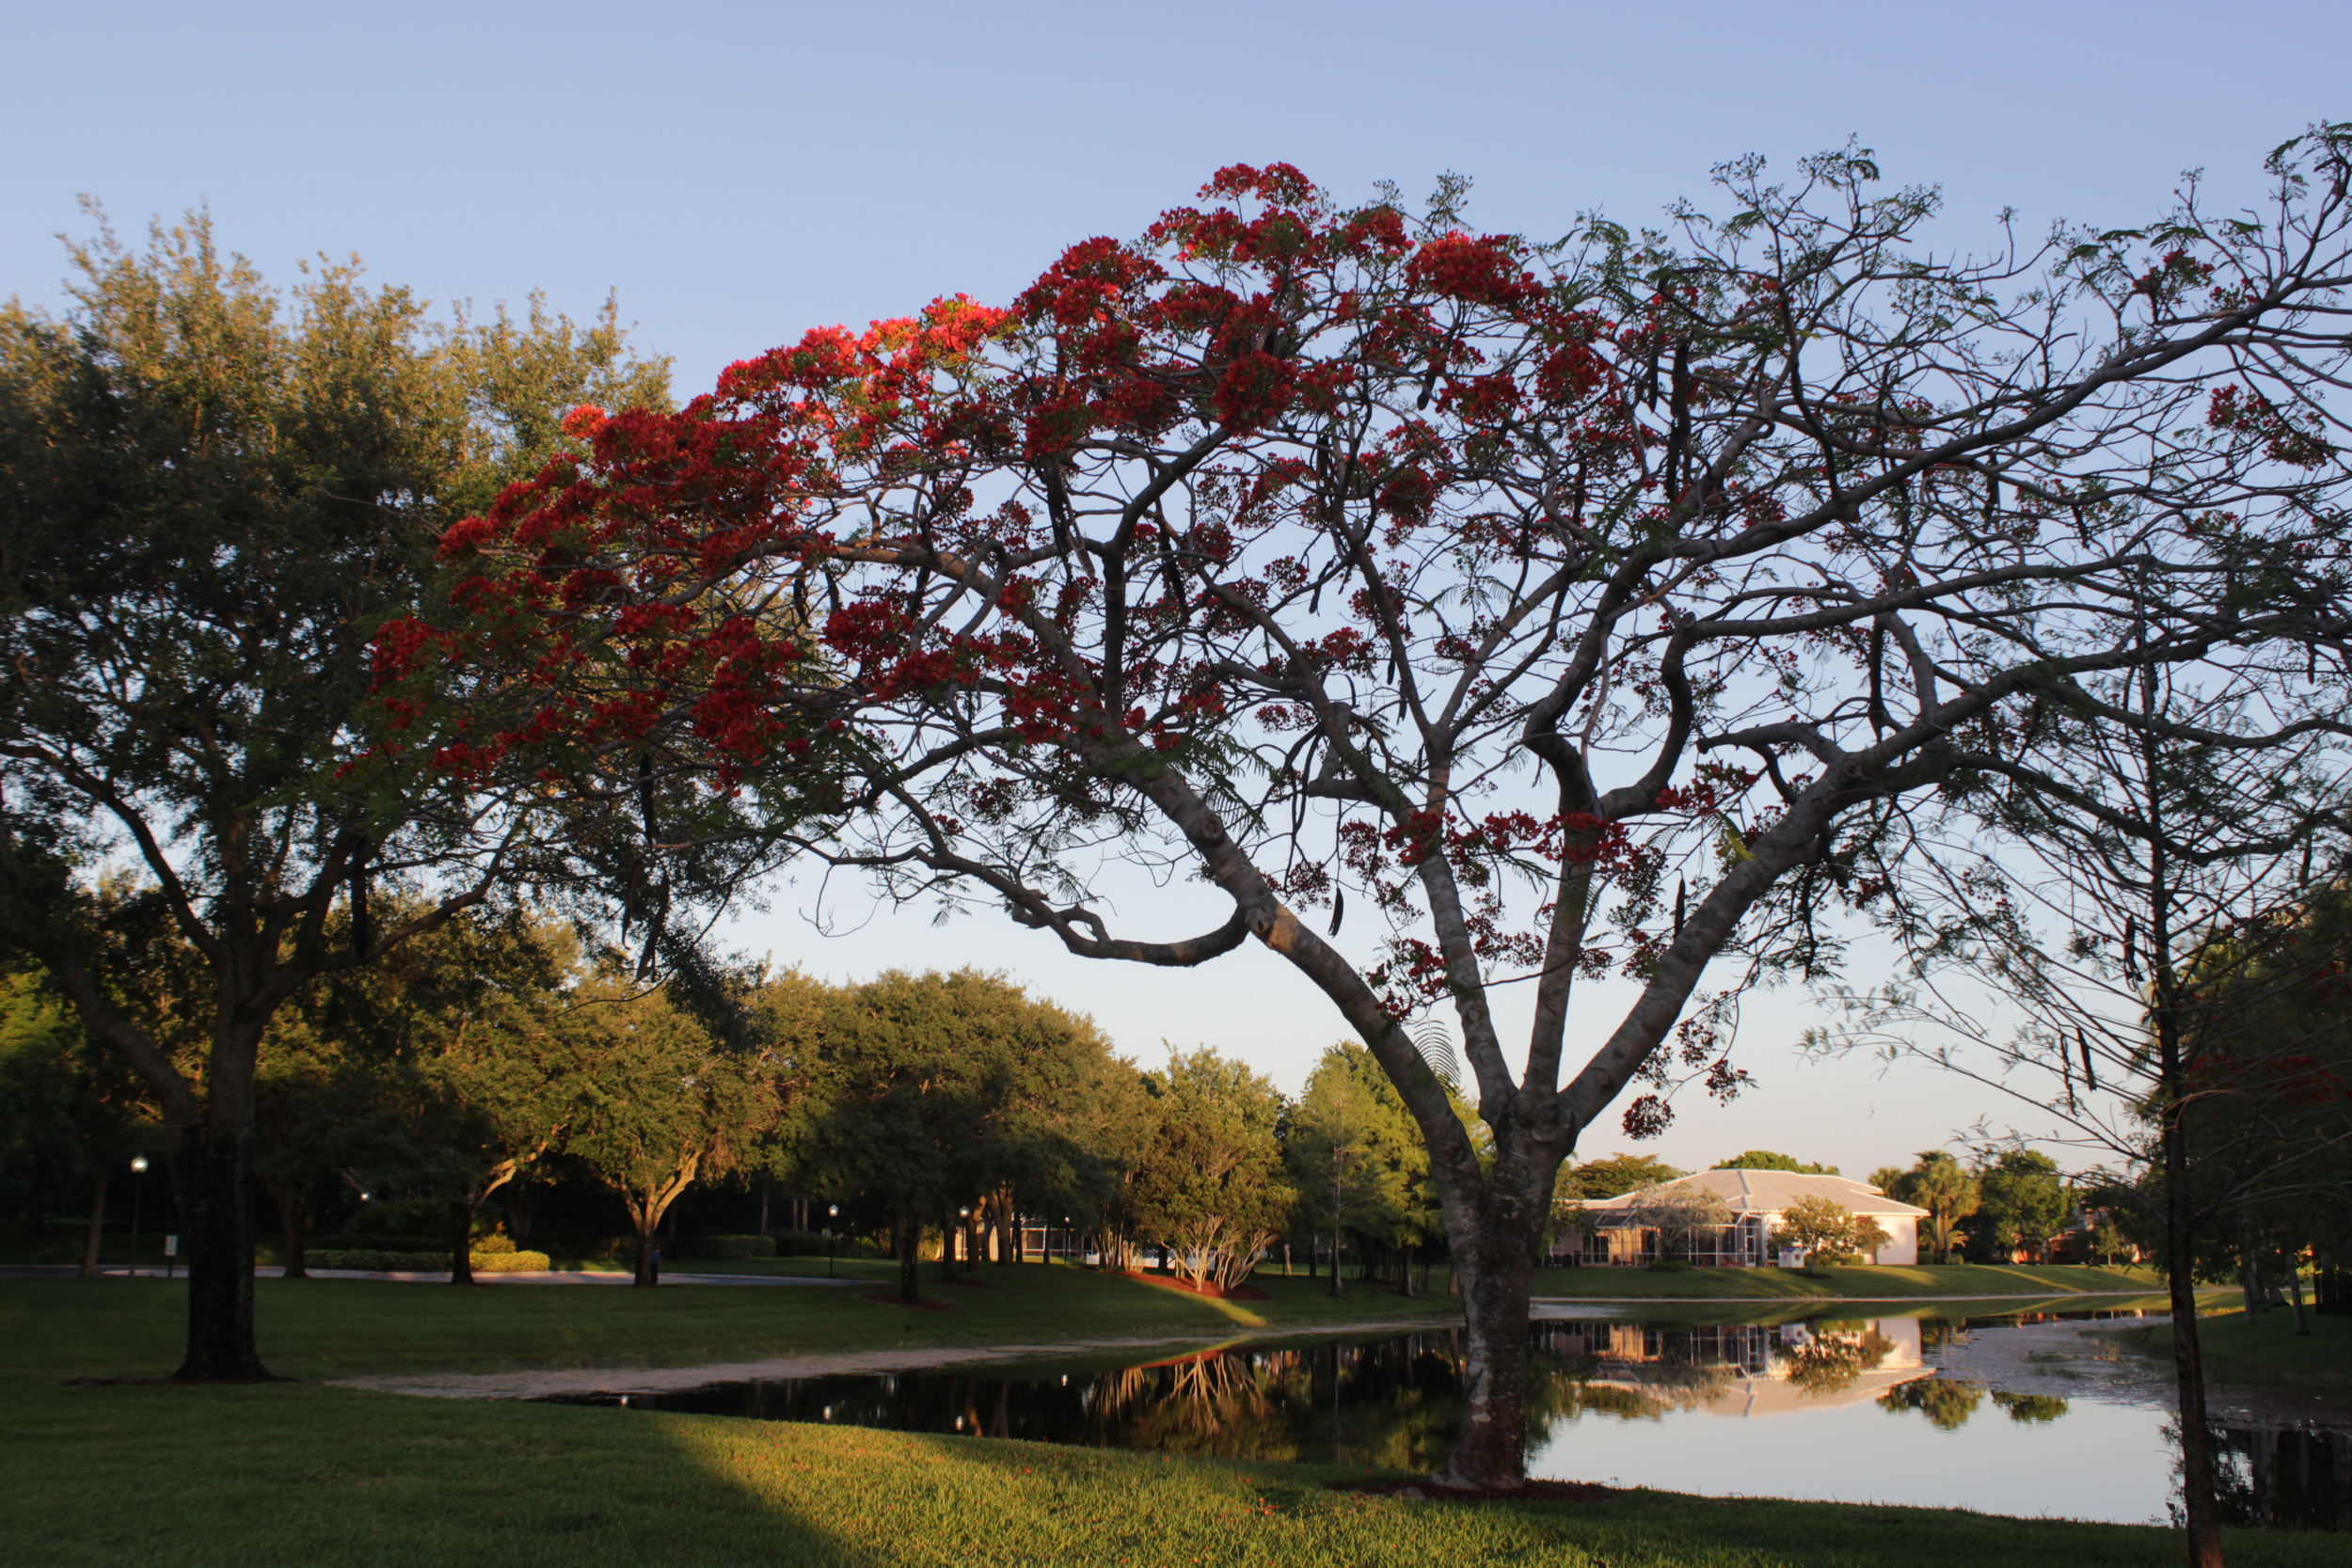 The Royal Poincianas are breaking out into bloom.